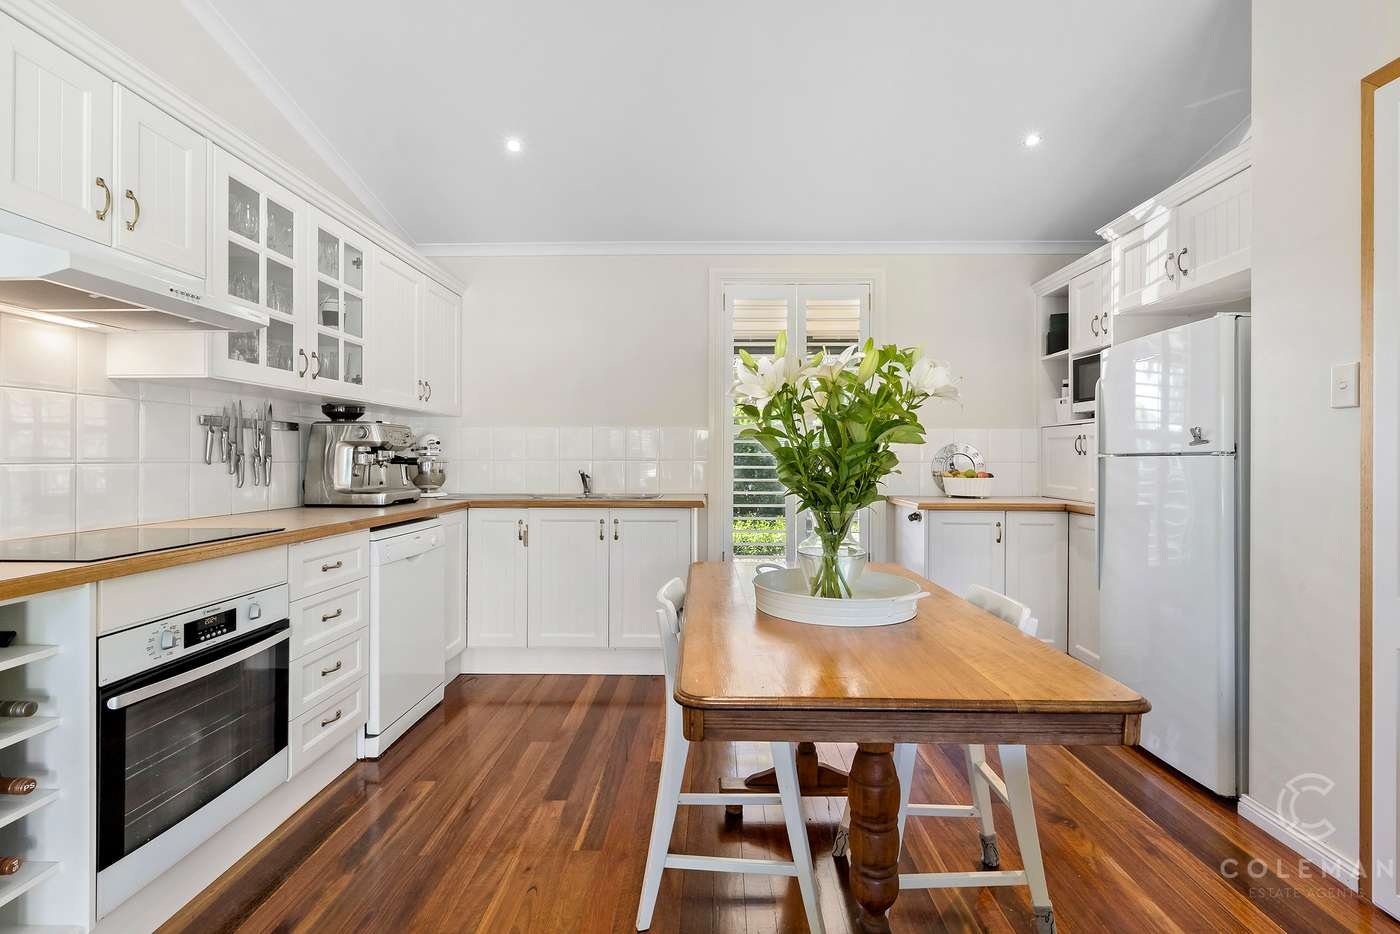 Main view of Homely house listing, 41 Cams Boulevard, Summerland Point NSW 2259